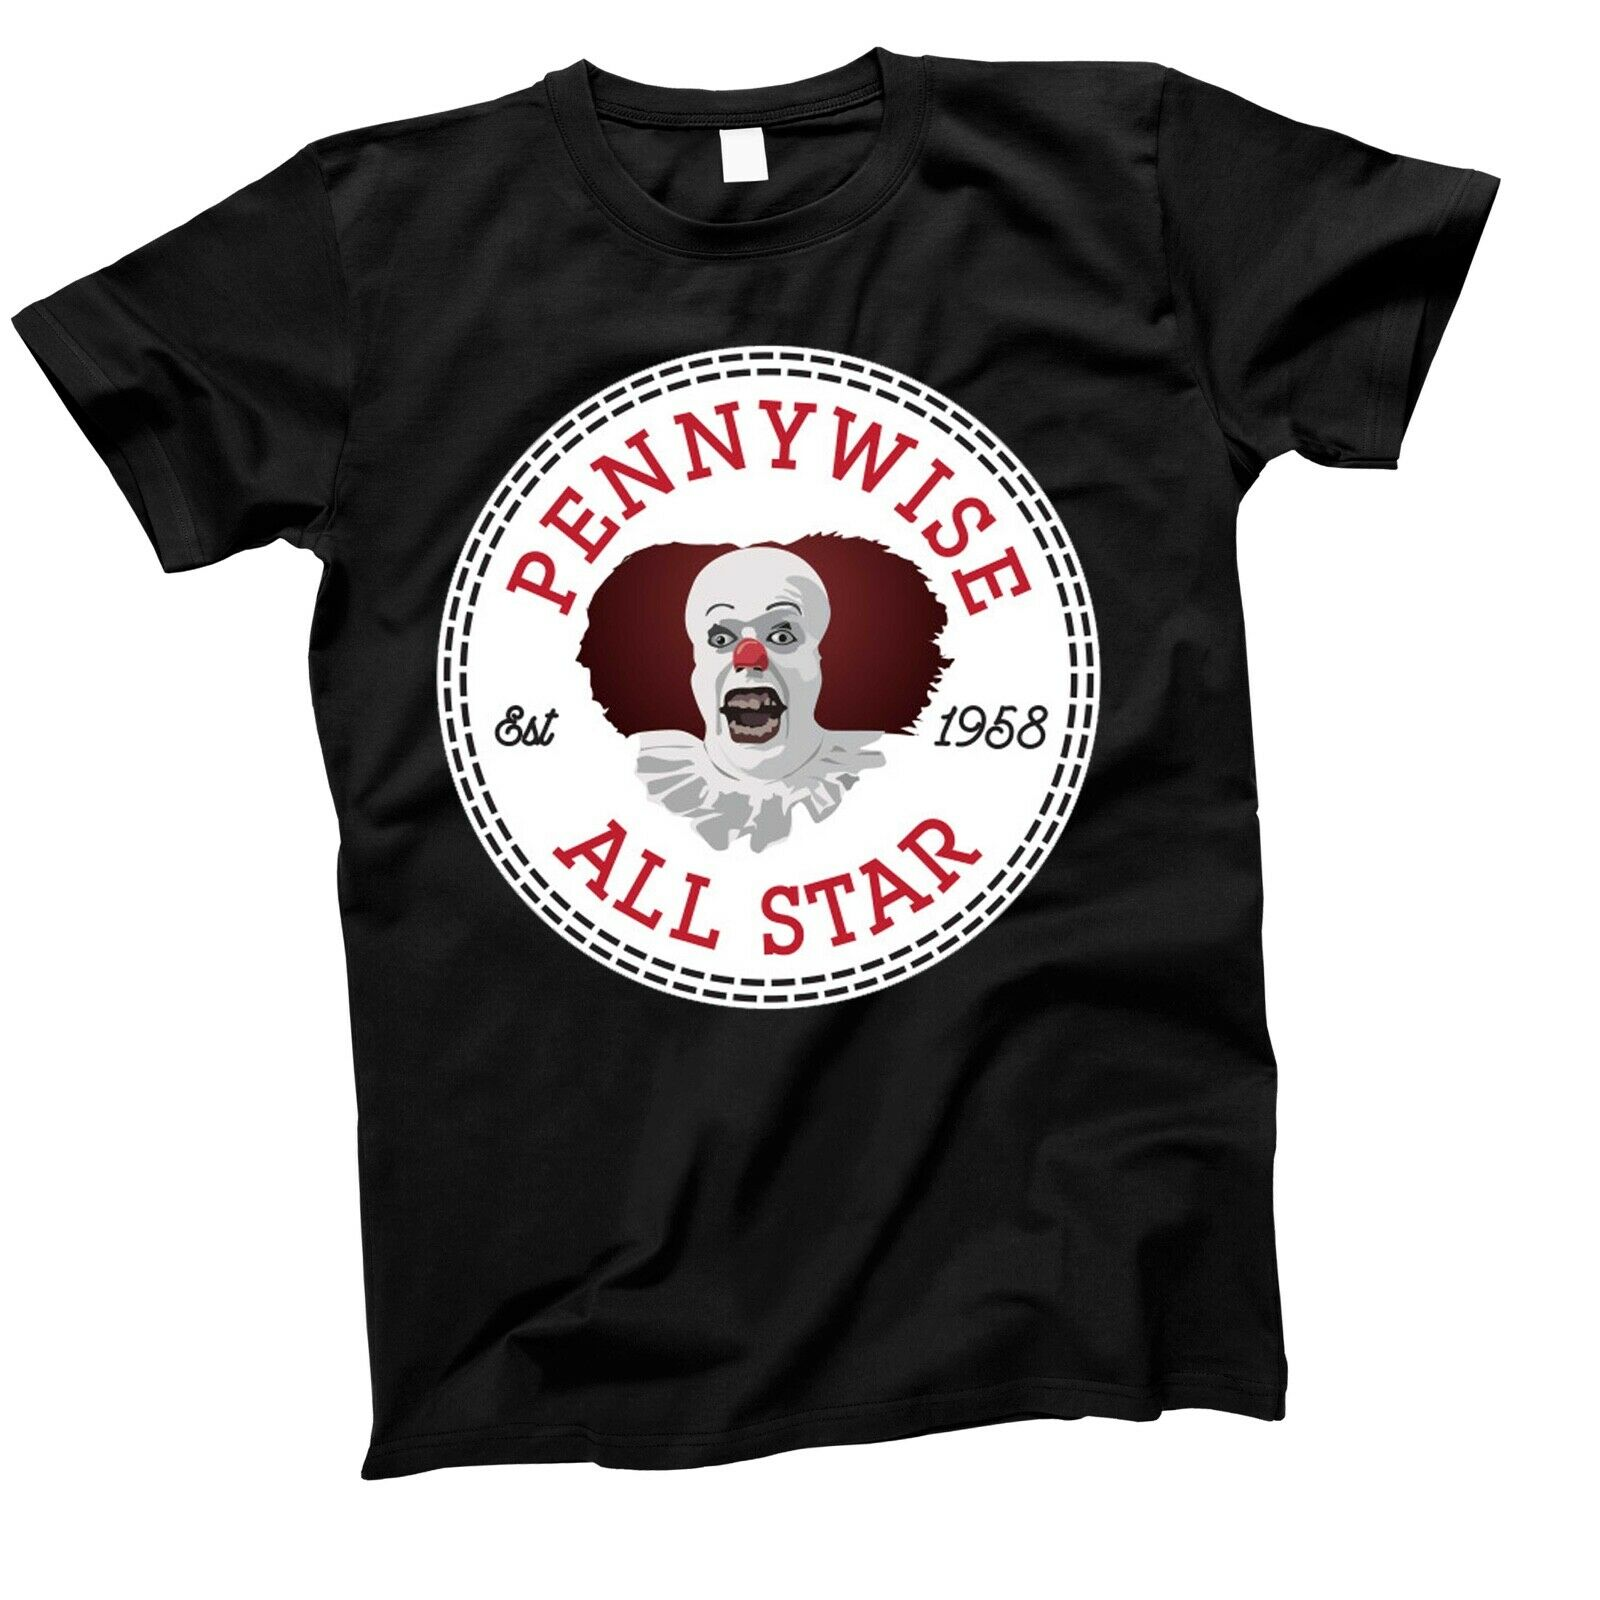 Pennywise IT T-Shirt Unisex Funny Tiny Toons Cotton Adult Clown Stephen King